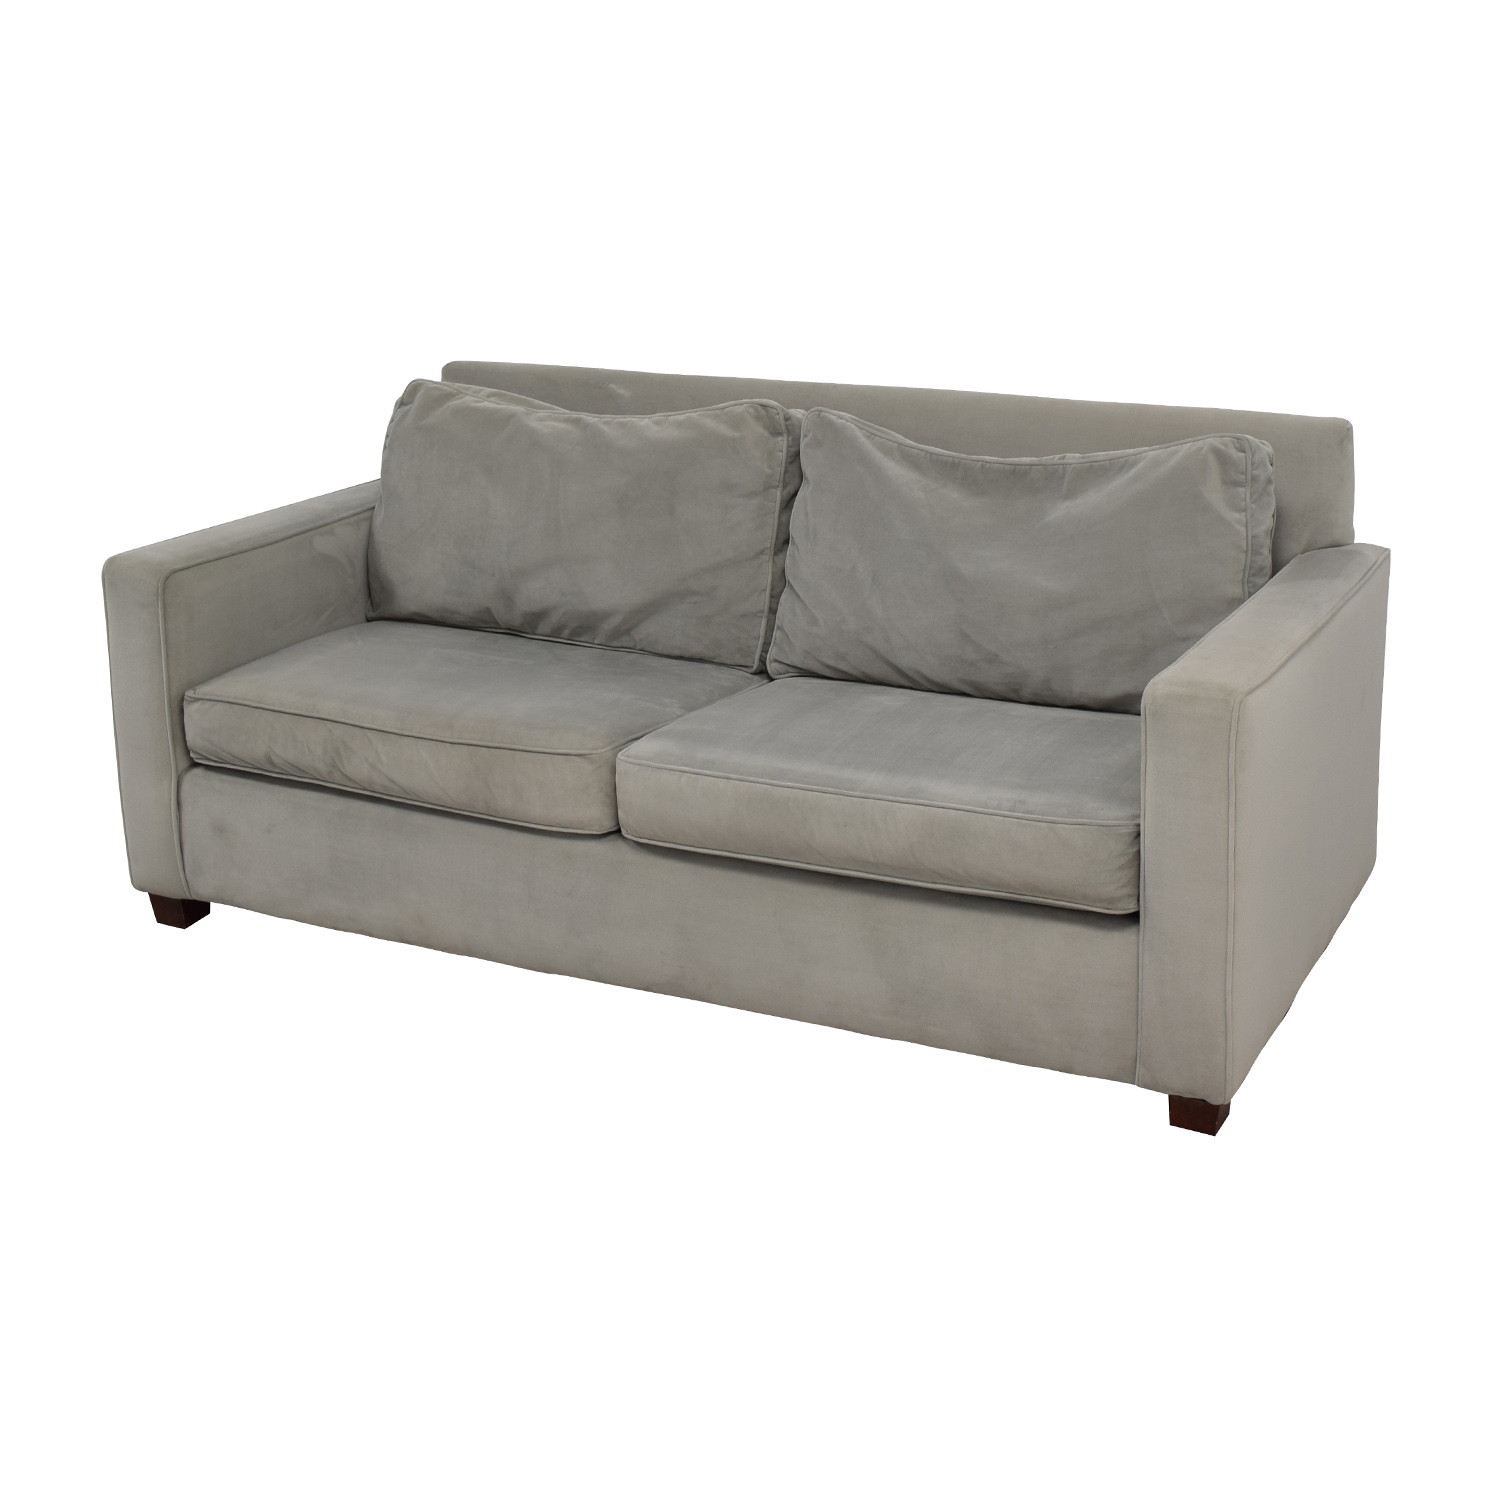 West Elm Henry Two-Seat Sofa sale